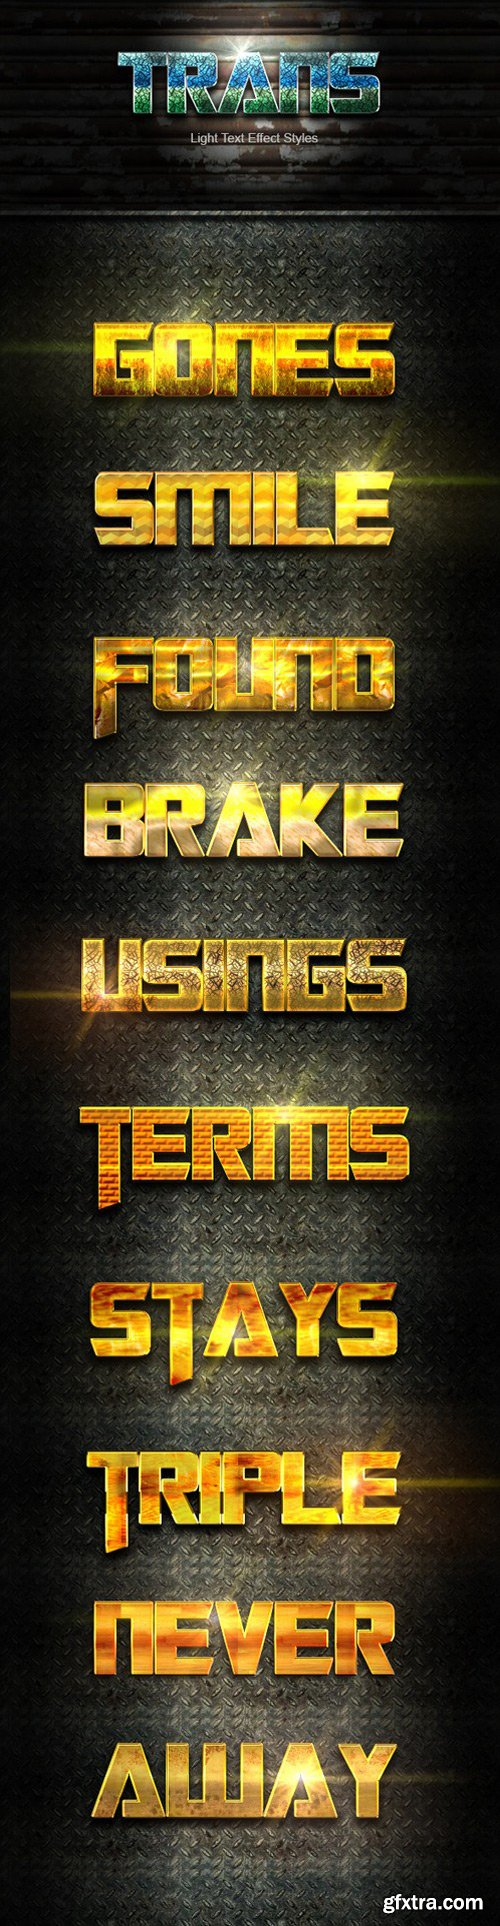 Graphicriver - 22140301 10 photoshop trans gold styles effect vol 41